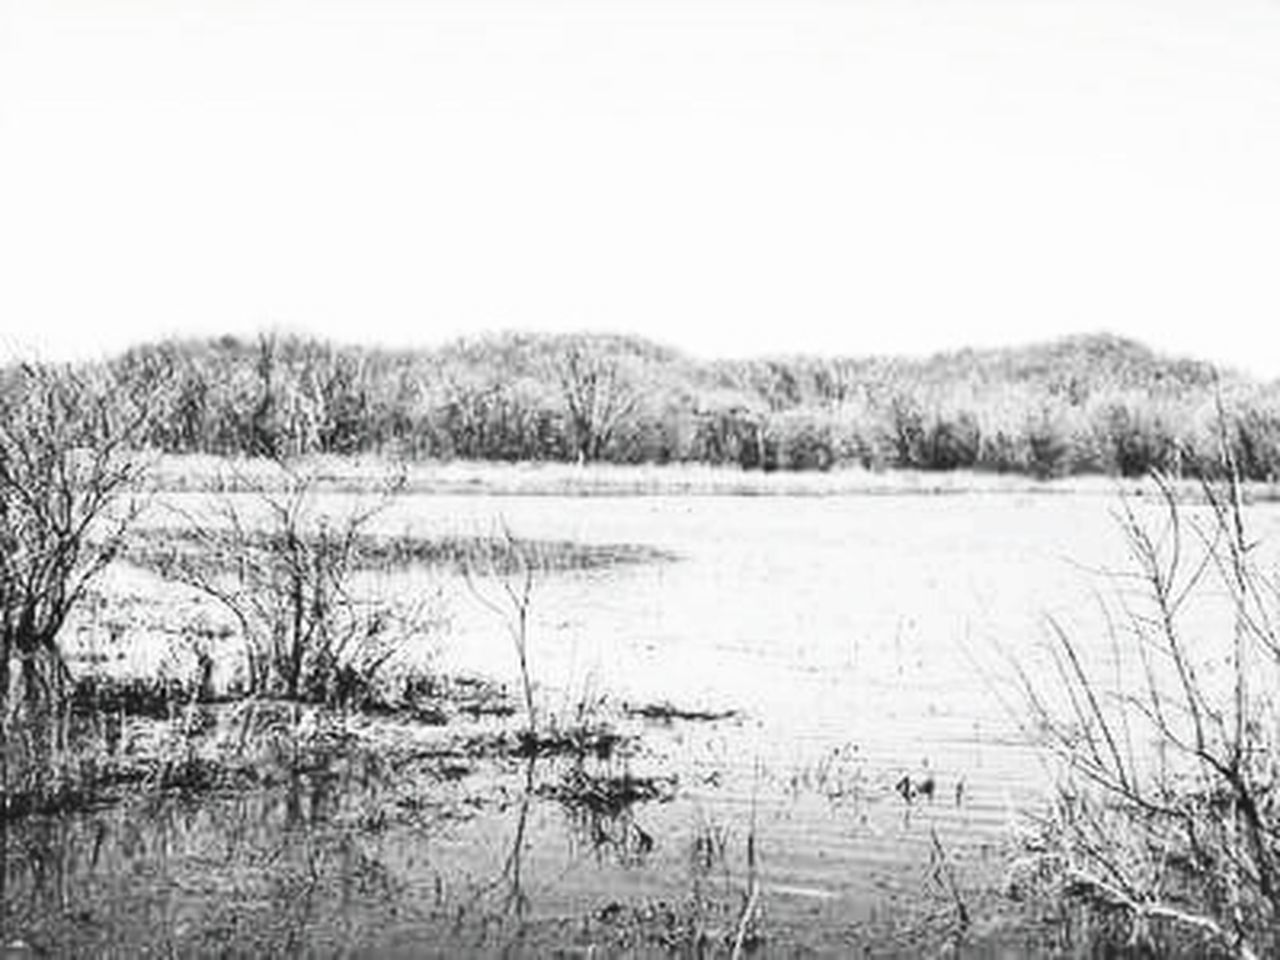 nature, water, lake, grass, outdoors, tranquility, tranquil scene, marsh, landscape, no people, day, scenics, timothy grass, beauty in nature, winter, sky